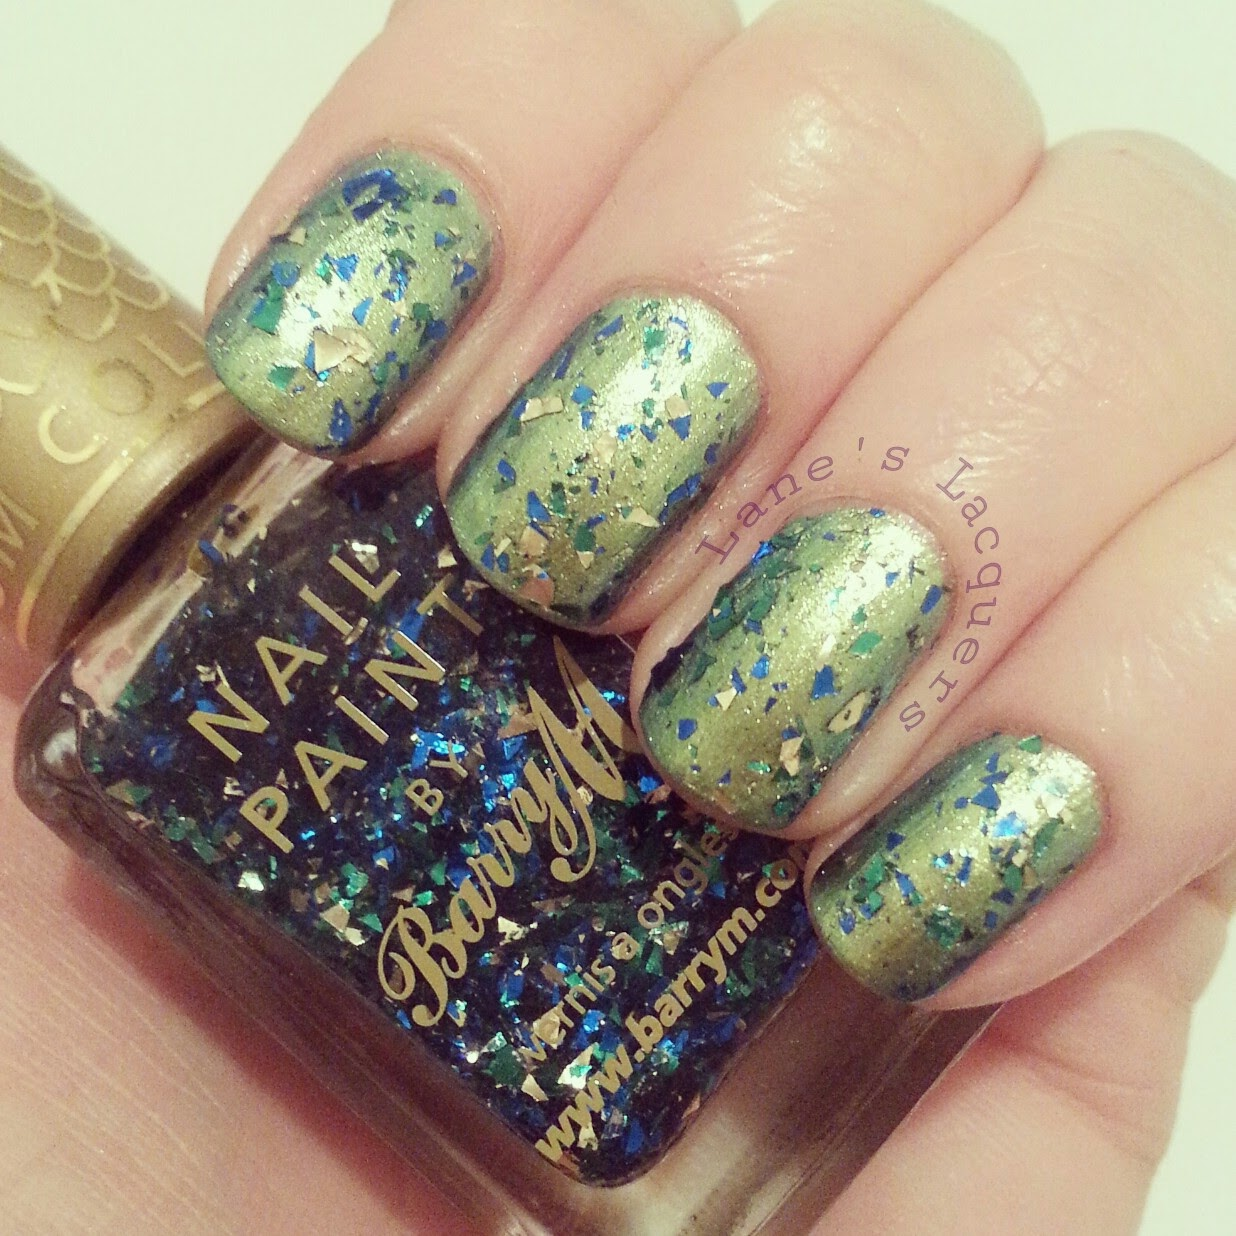 barry-m-aquarium-green-and-glitter-aqnp1-swatch-nails